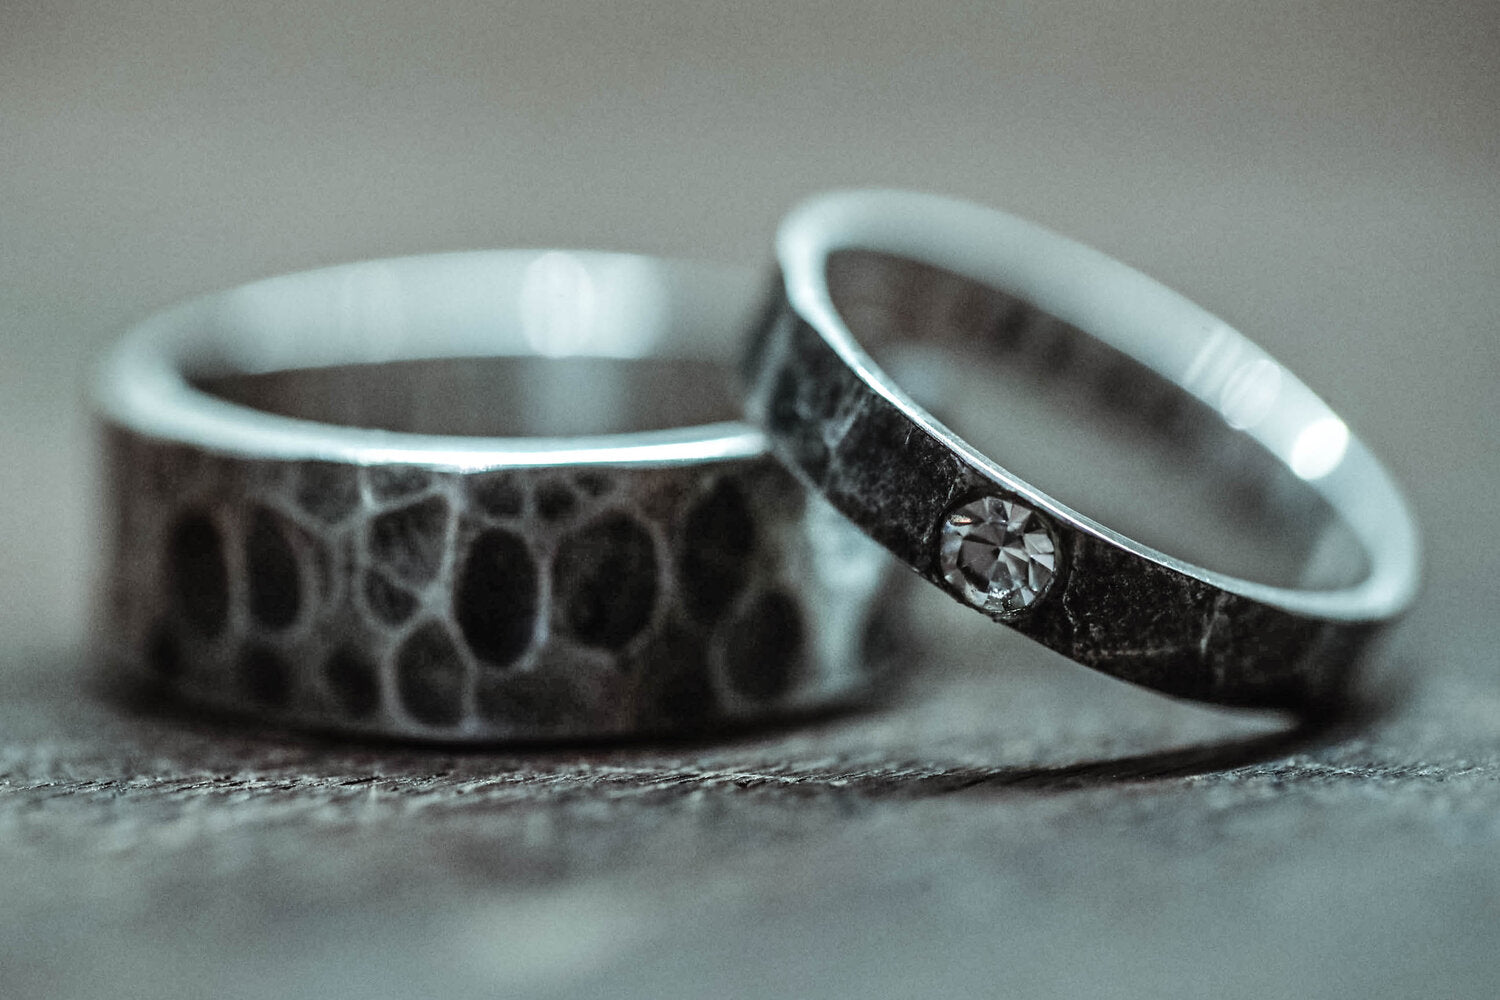 Rings designed at Agung Silver in Sideman, Bali